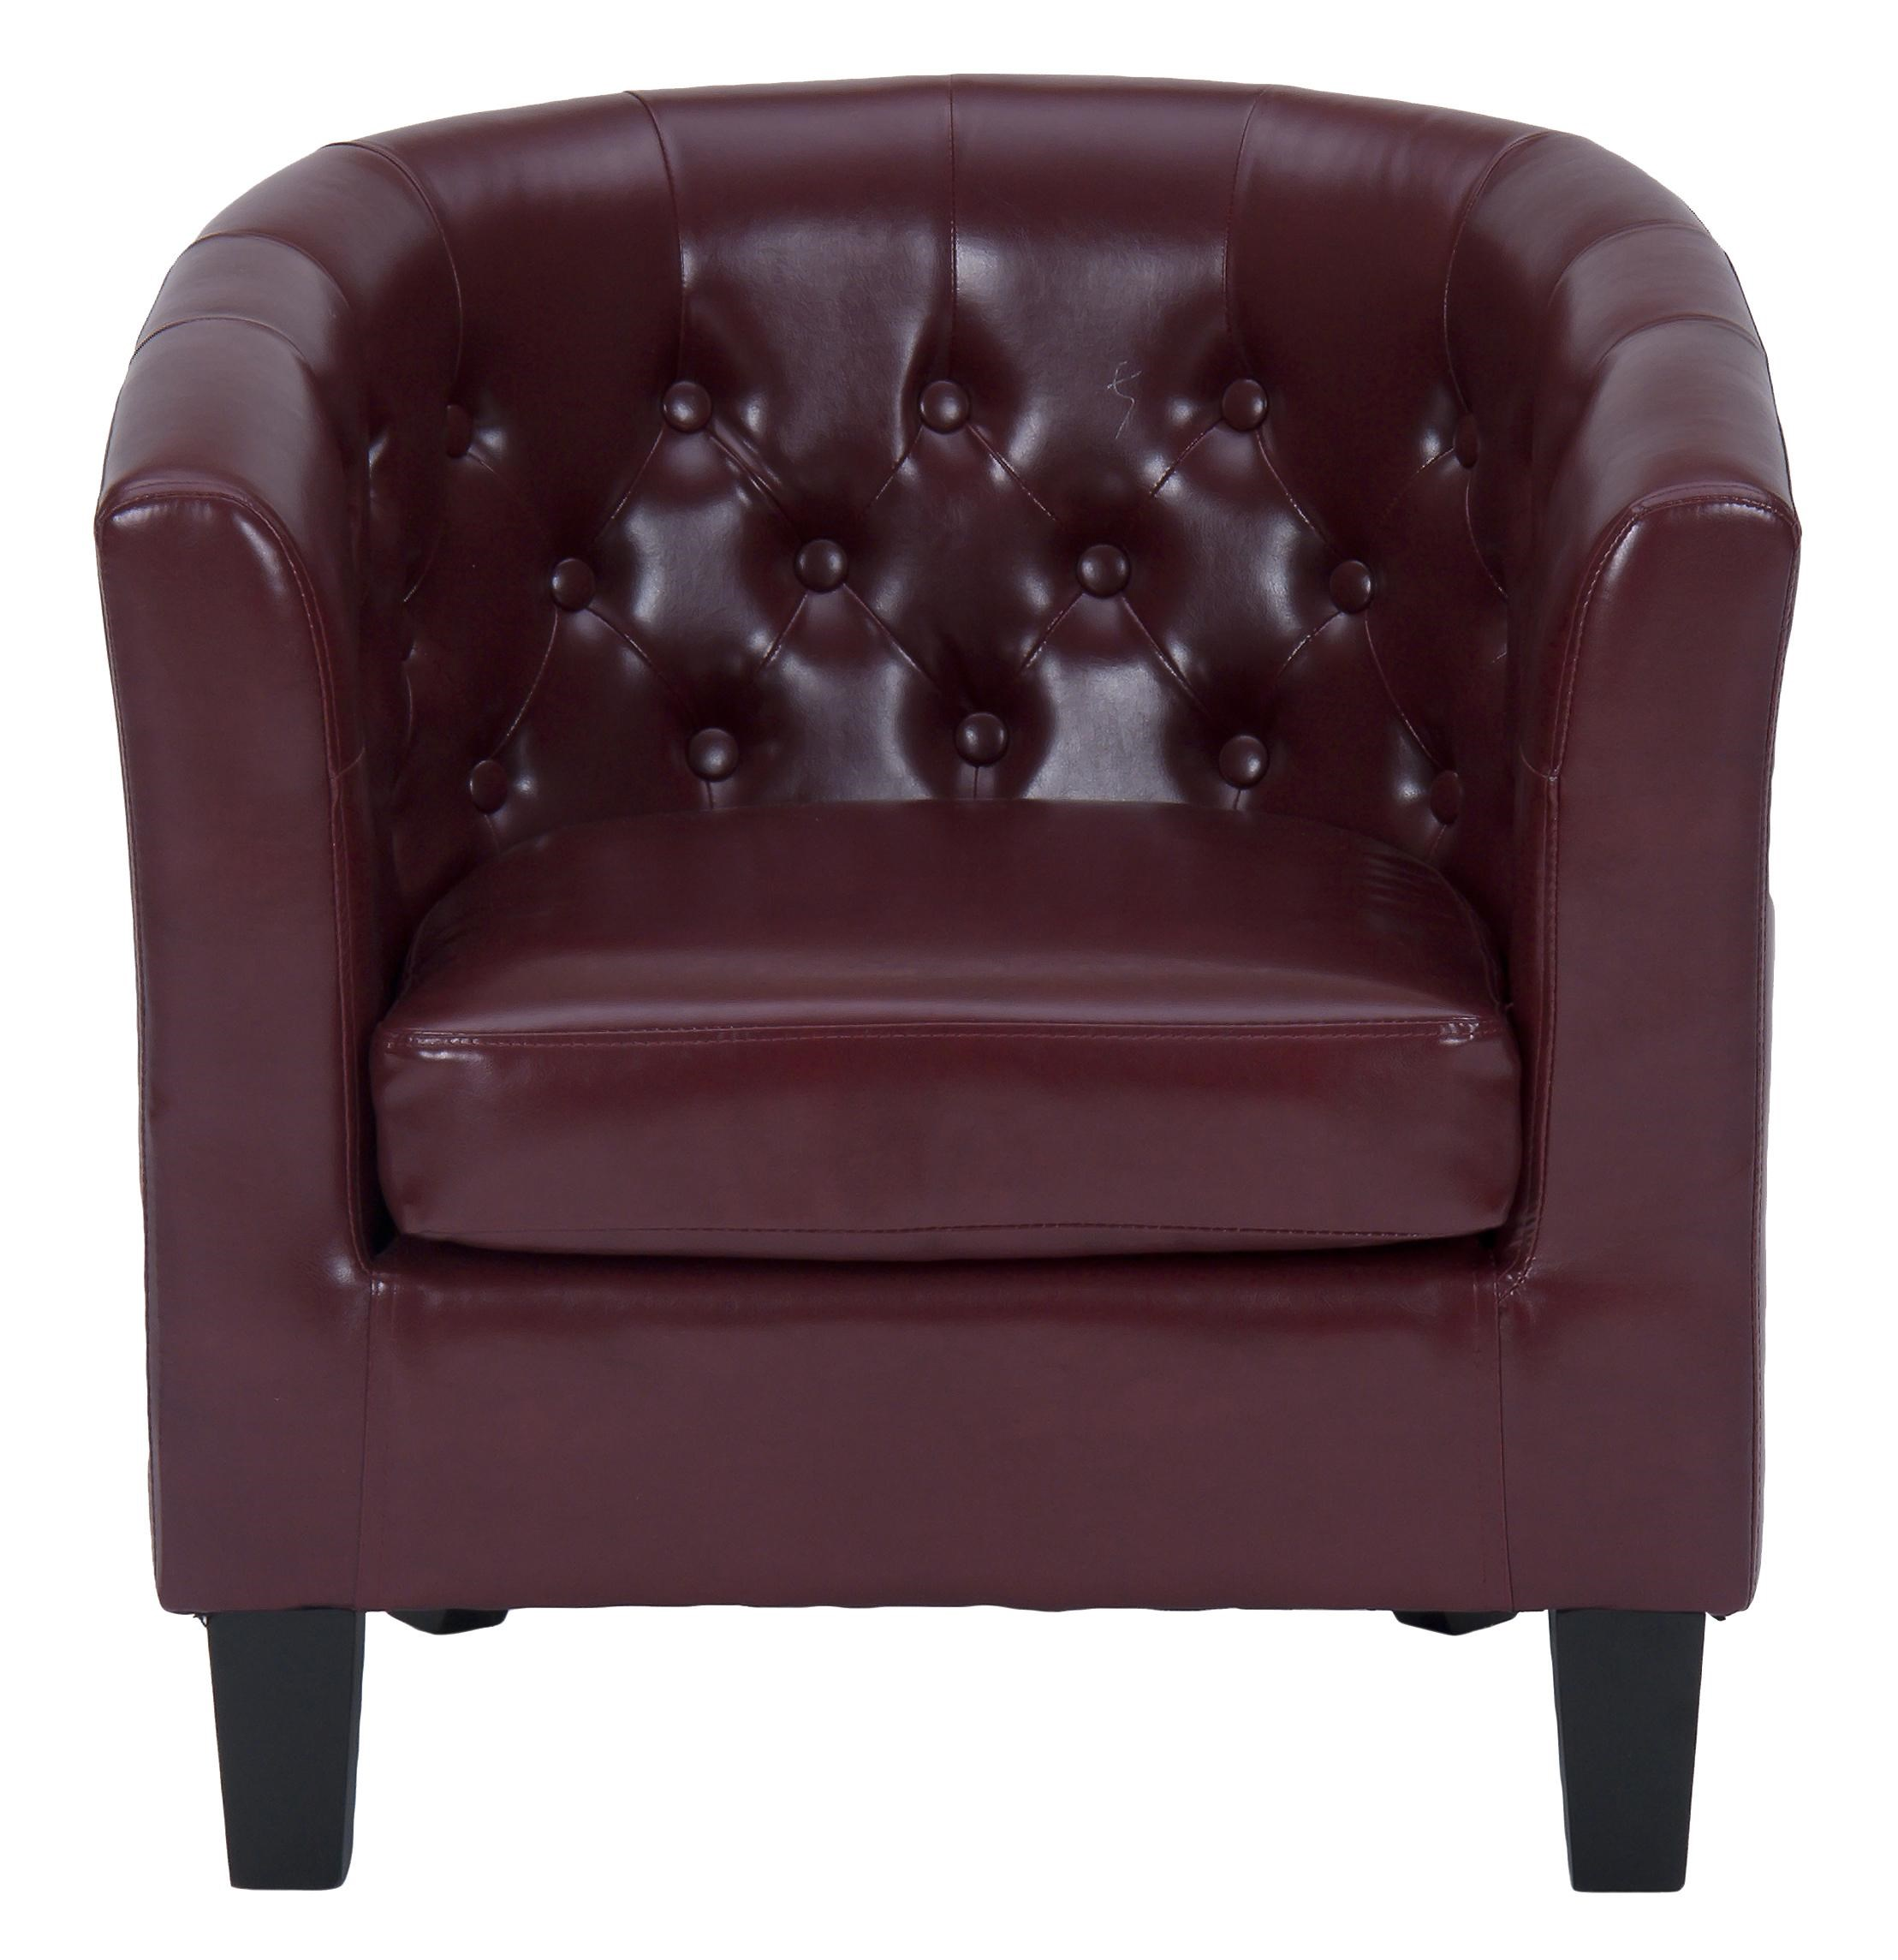 Jofran Easy Living Contemporary Club Chair With Tufted Back